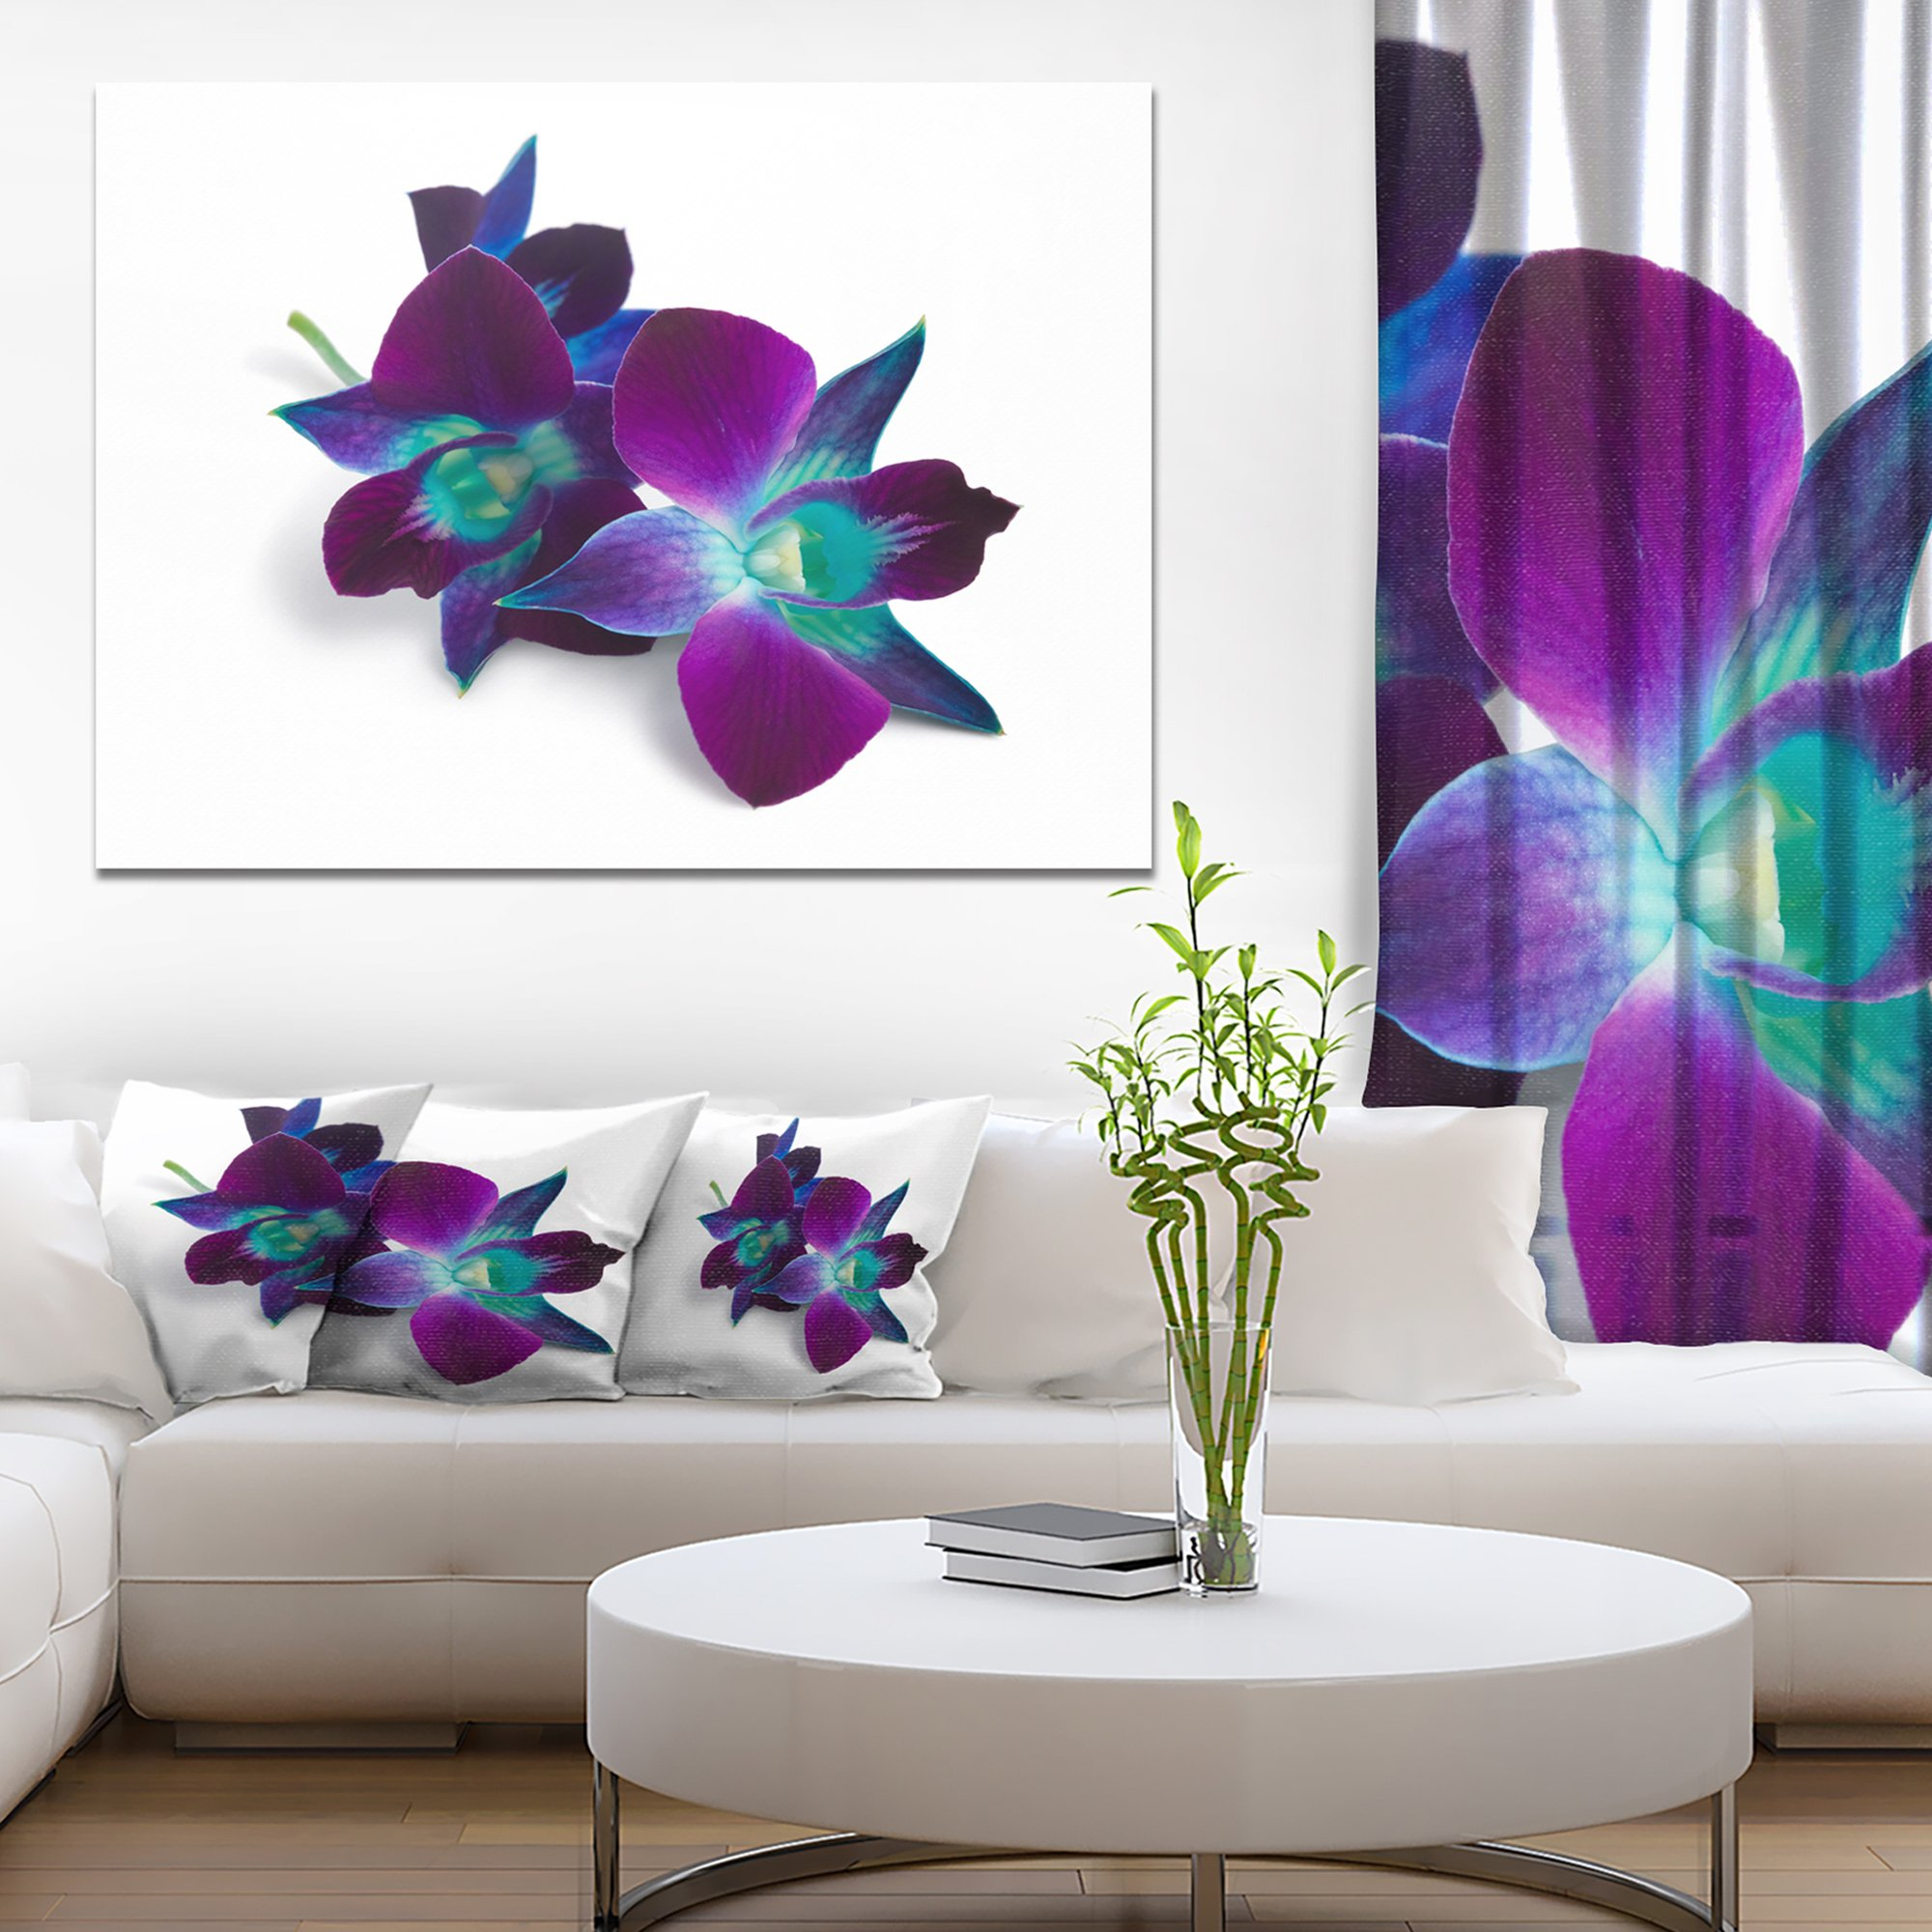 Deep Purple Orchid Flowers on White Flowers Canvas Wall Artwork by Design Art